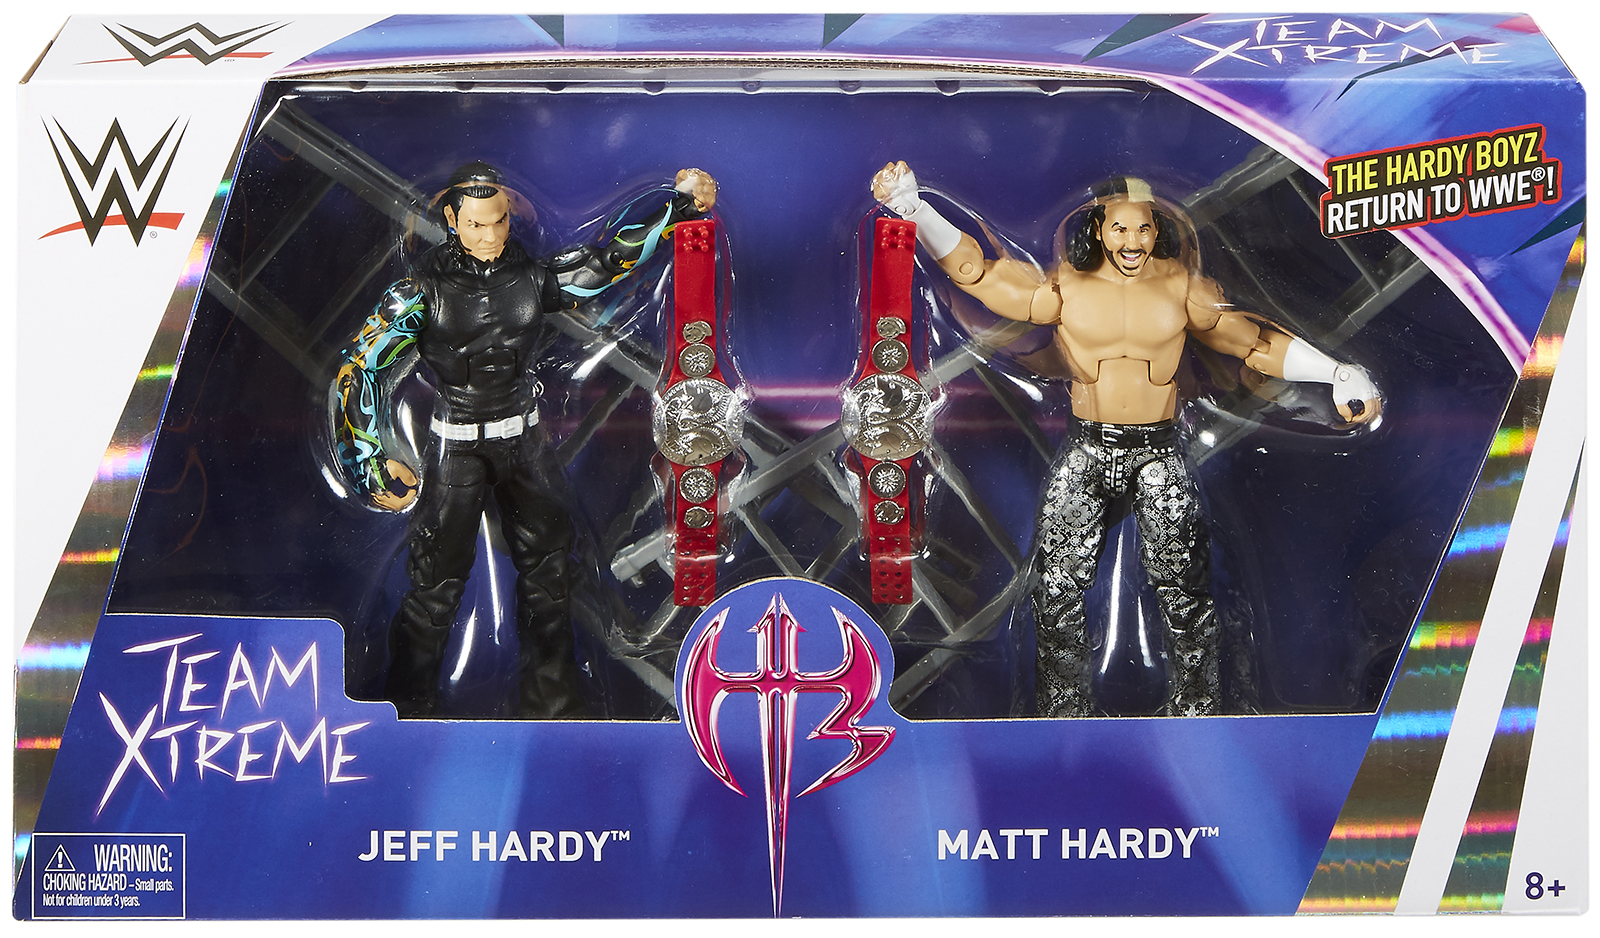 Hardy Boyz (Matt Hardy & Jeff Hardy) WWE Epic Moments Toy Wrestling Action Figures by Mattel